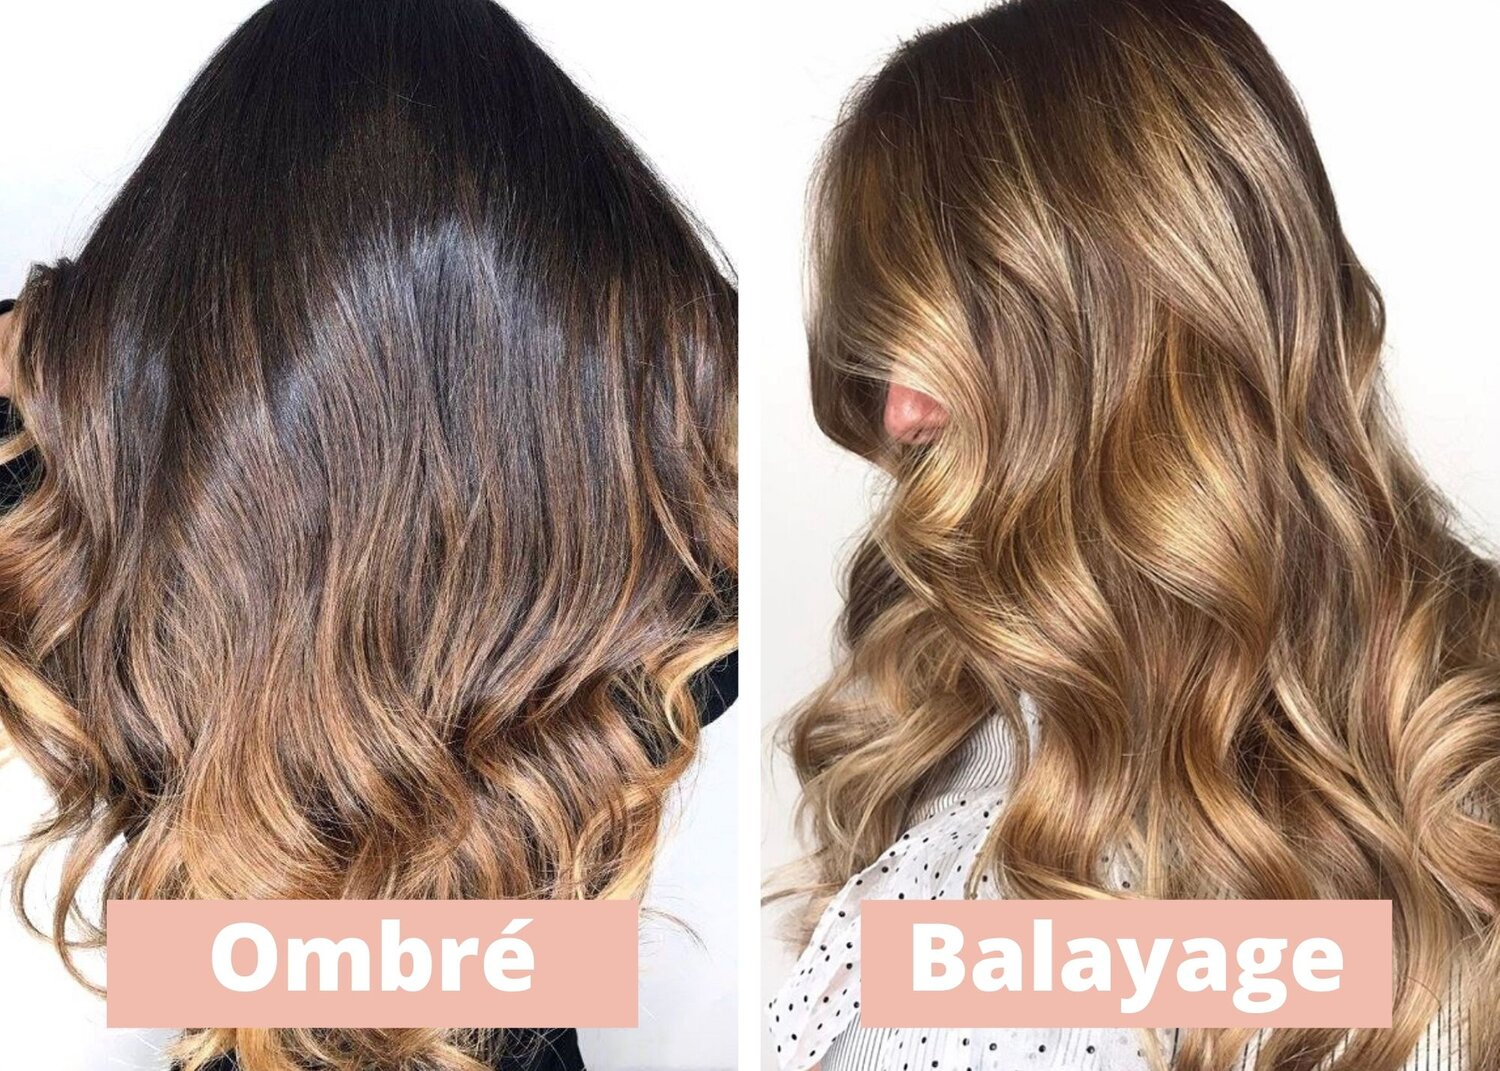 Balayage Vs Ombre What S The Difference Educo Salon